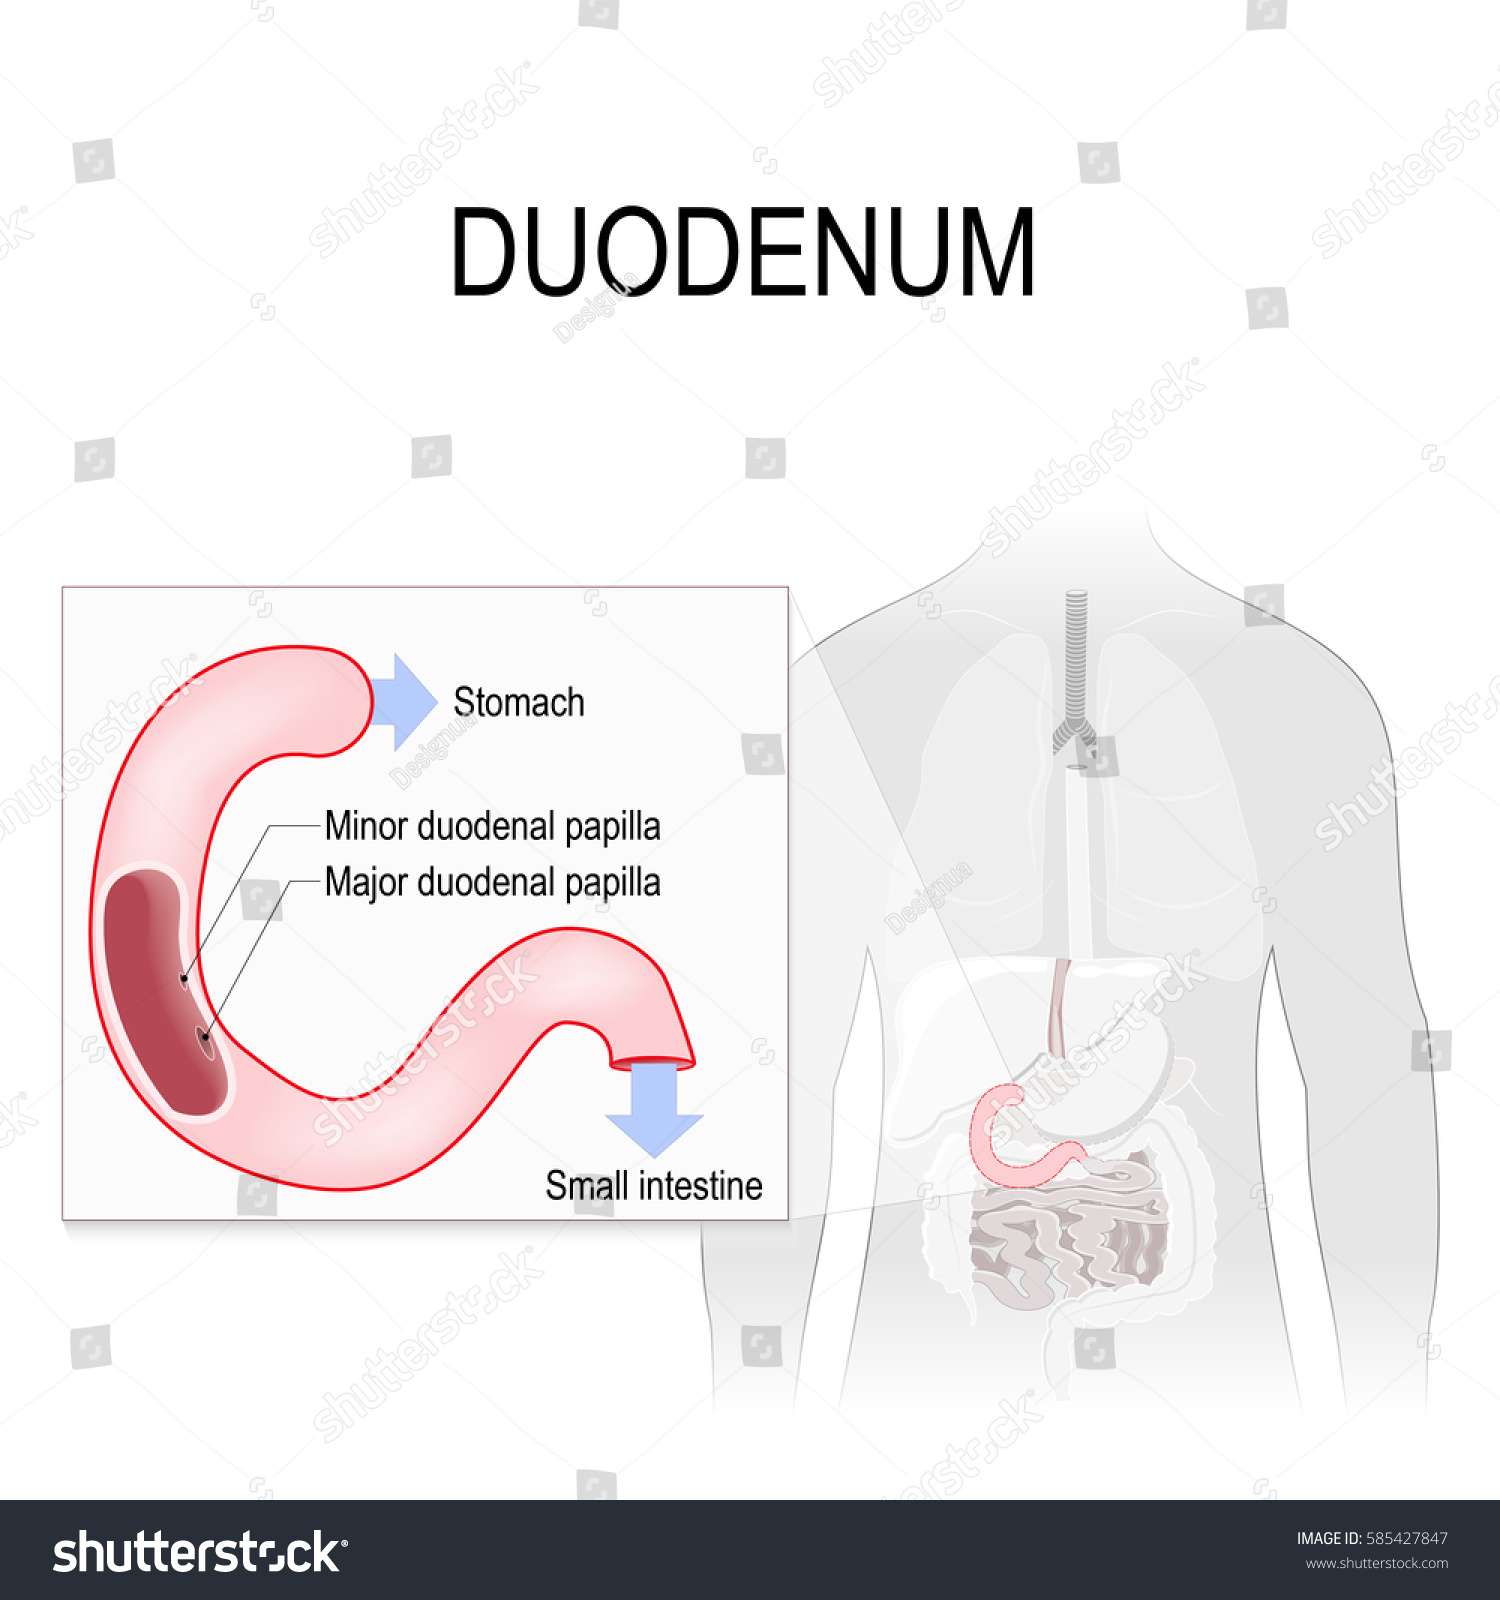 Duodenum Anatomy Anatomical Locations Labelled Human Stock ...